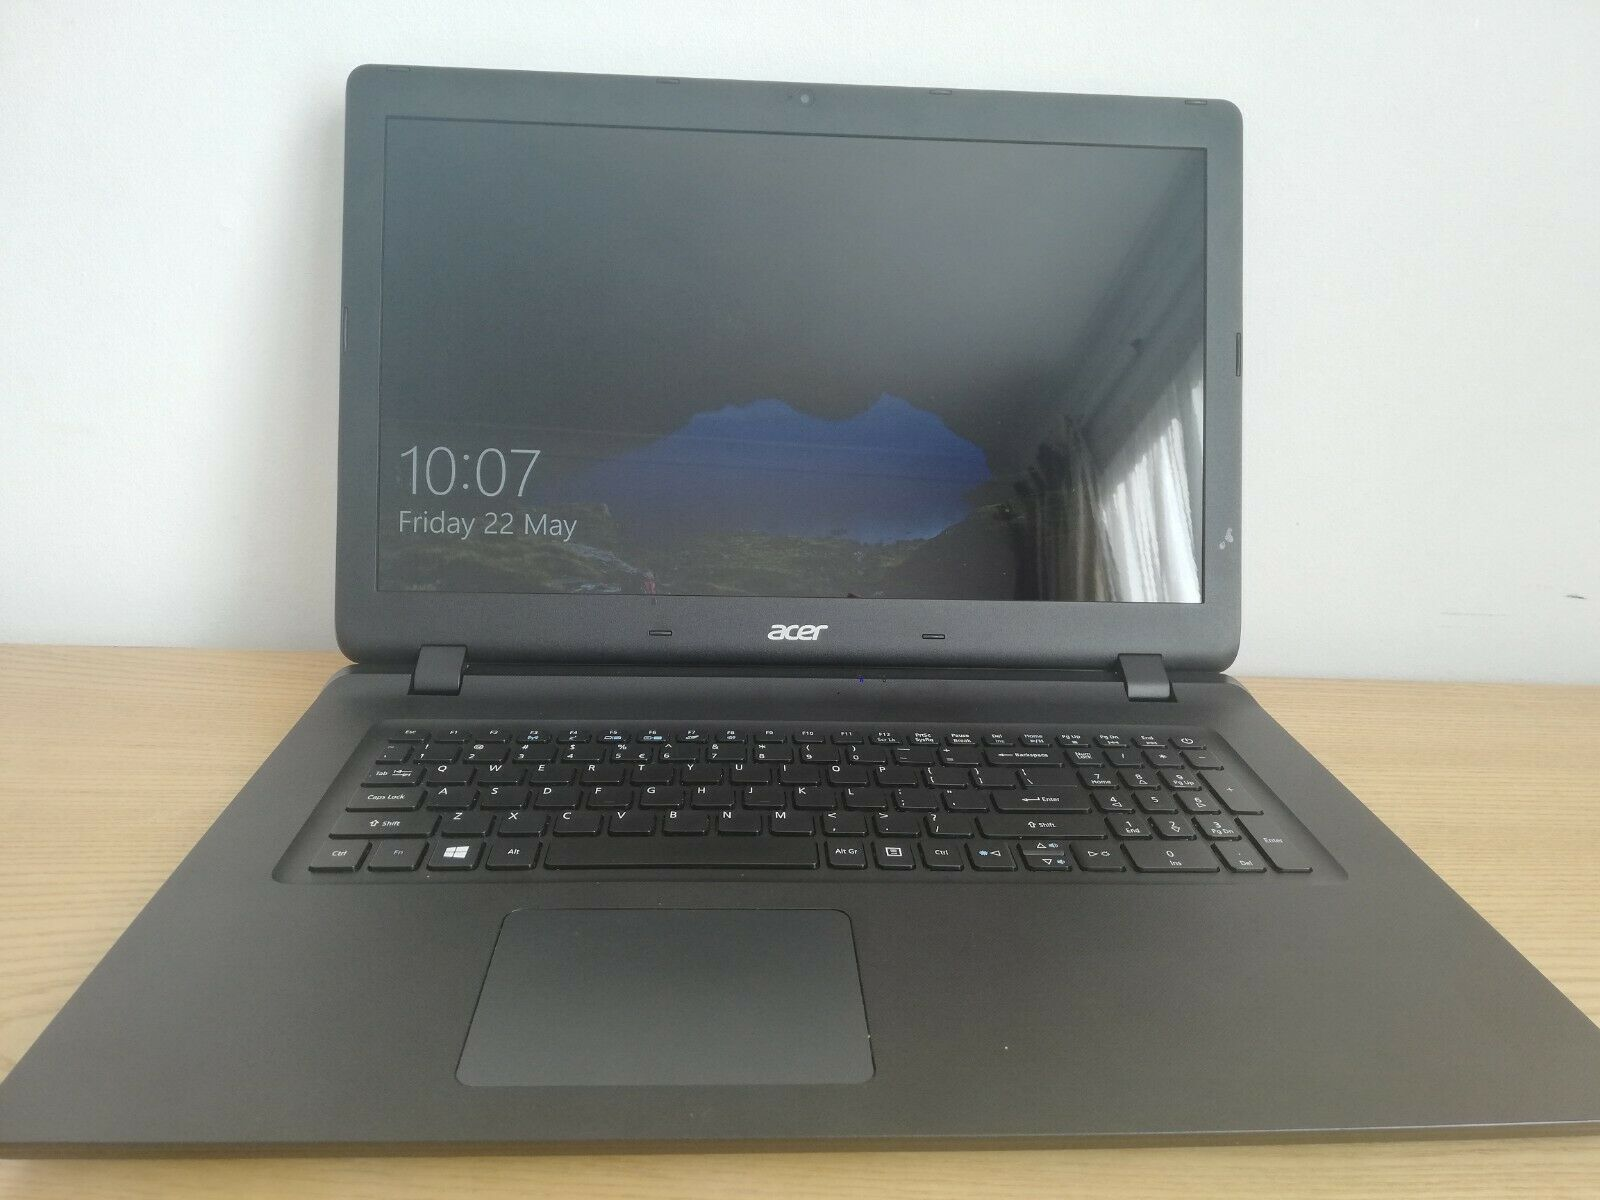 "Laptop Windows - Laptop Acer ES1-732-Celeron N3350, Display 17.3"", 256gb SSD, WIndows 10"